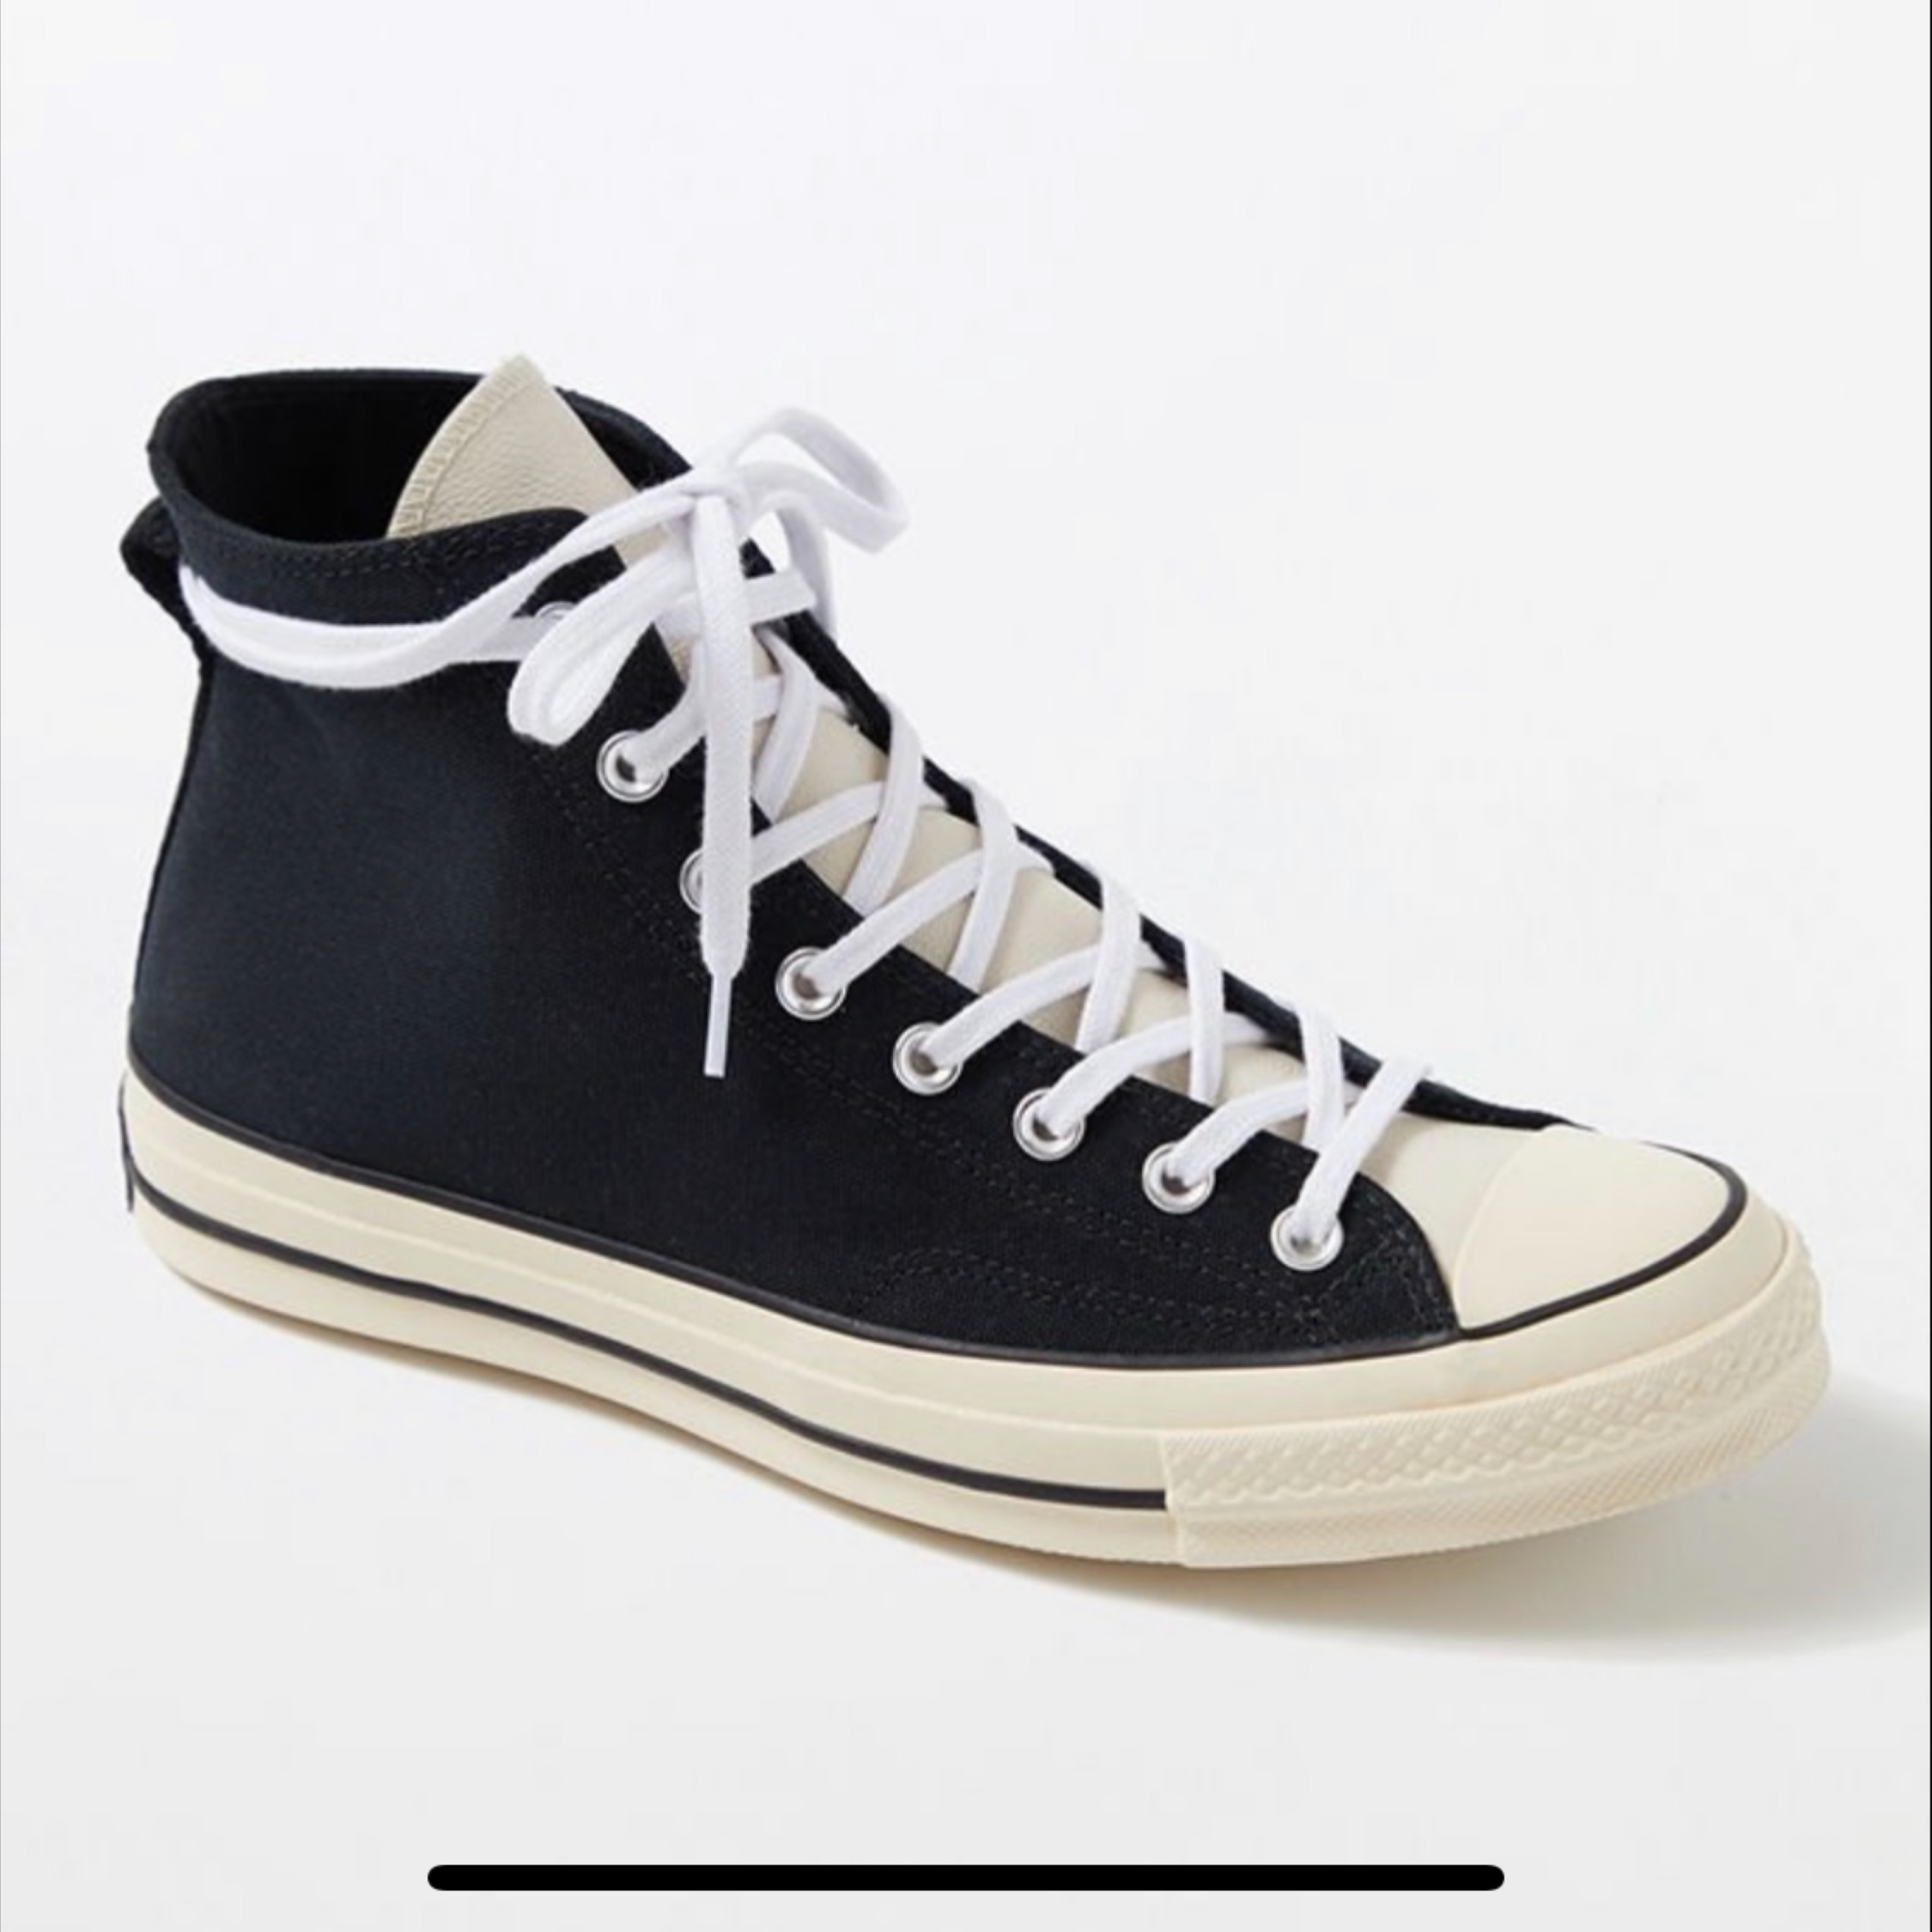 extra long converse laces